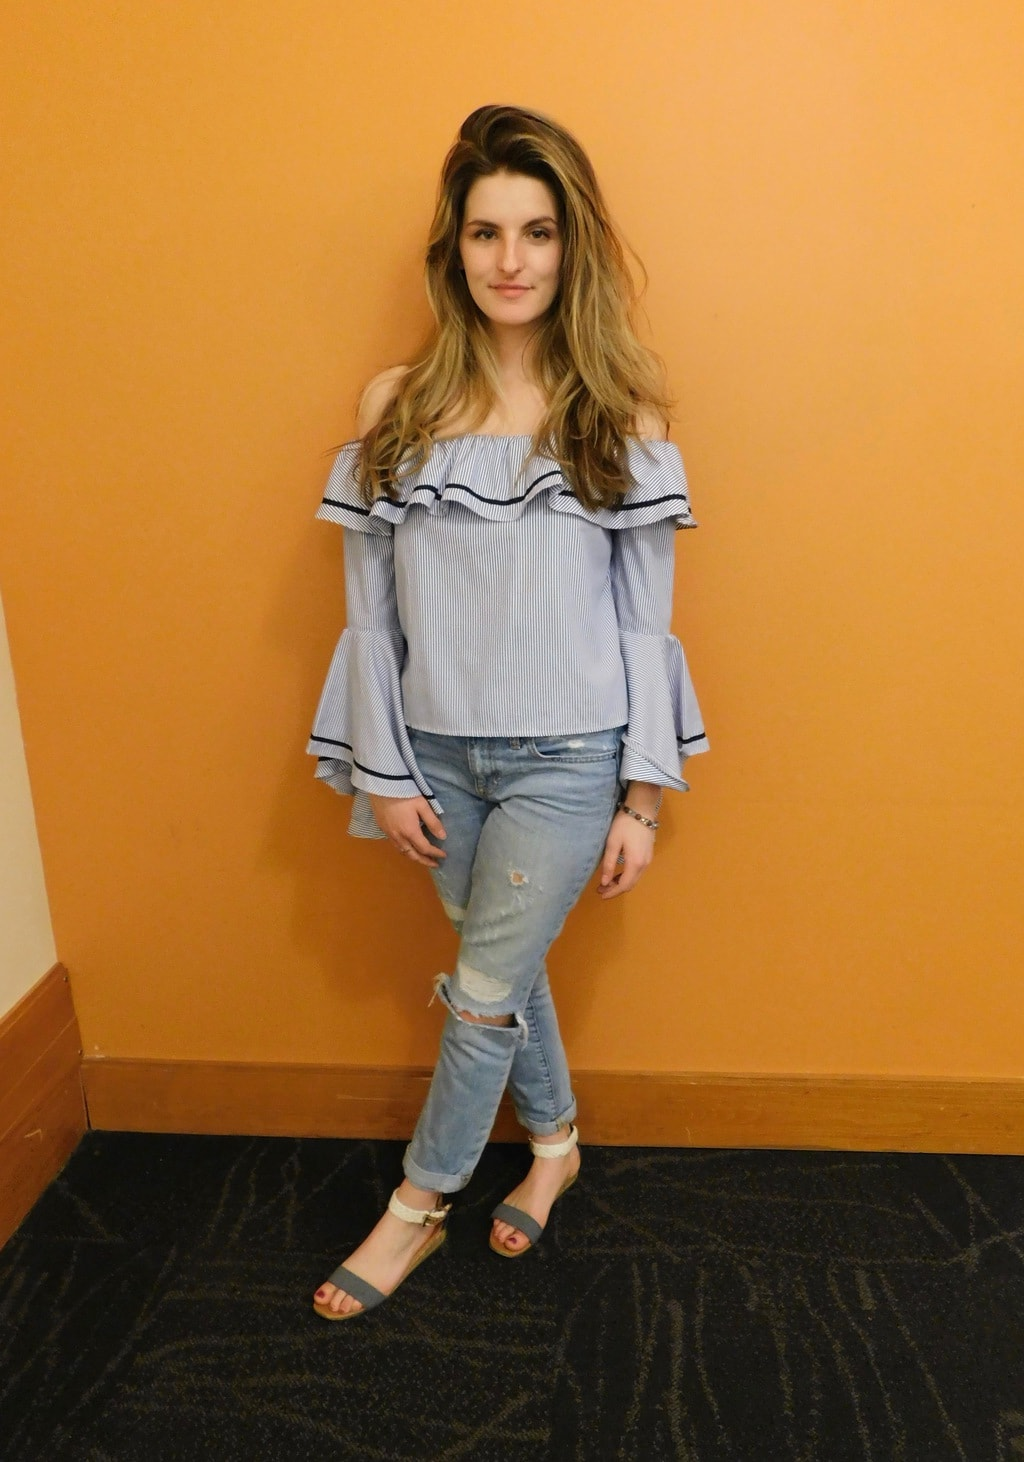 Jefferson University student Danielle wears an off-the-shoulder blue ruffled top with bell sleeves, light-wash distressed denim jeans, and simple grey and white flat sandals.